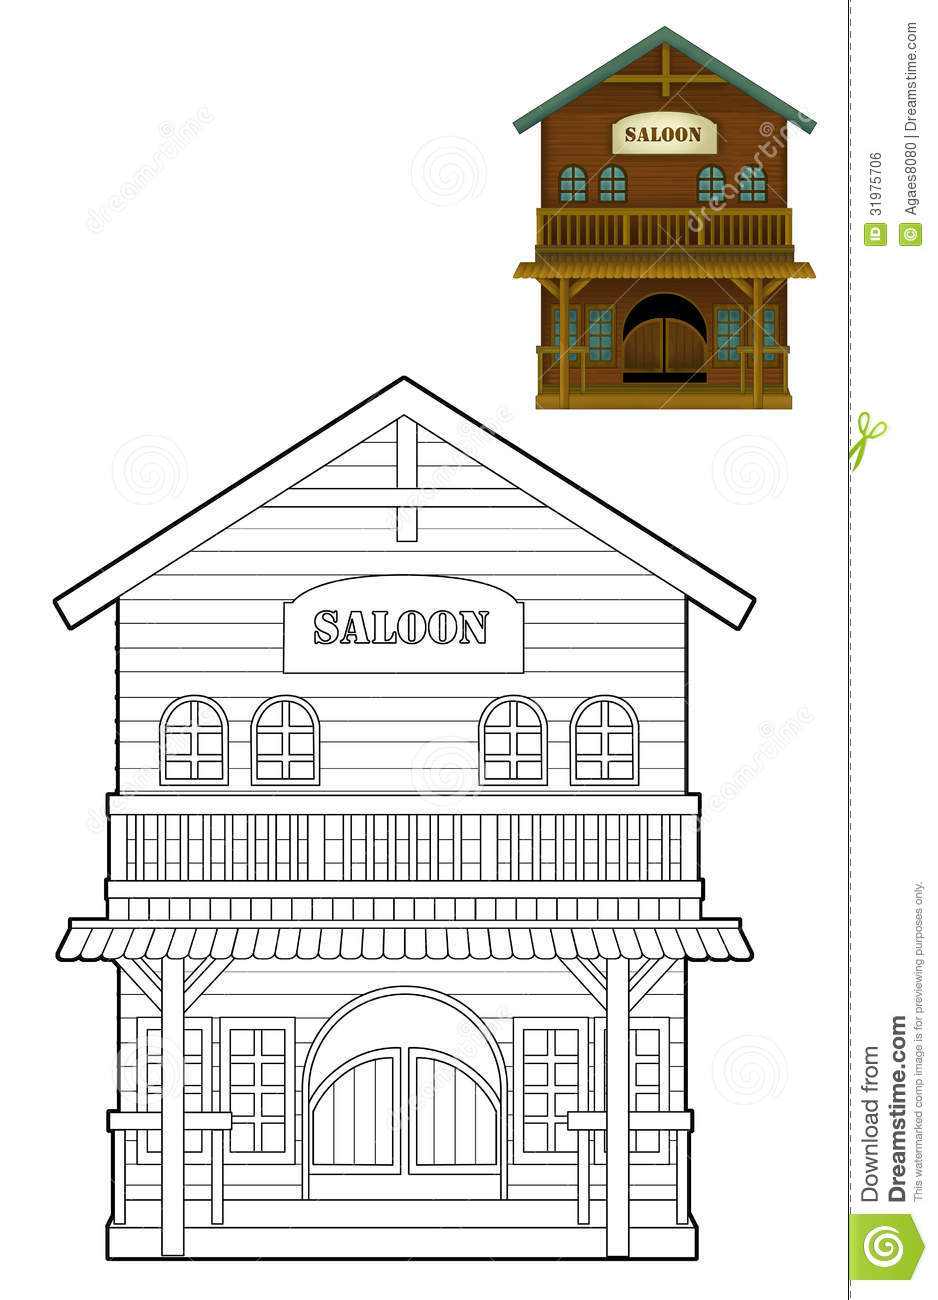 The Coloring Page Wild West Western Illustration For